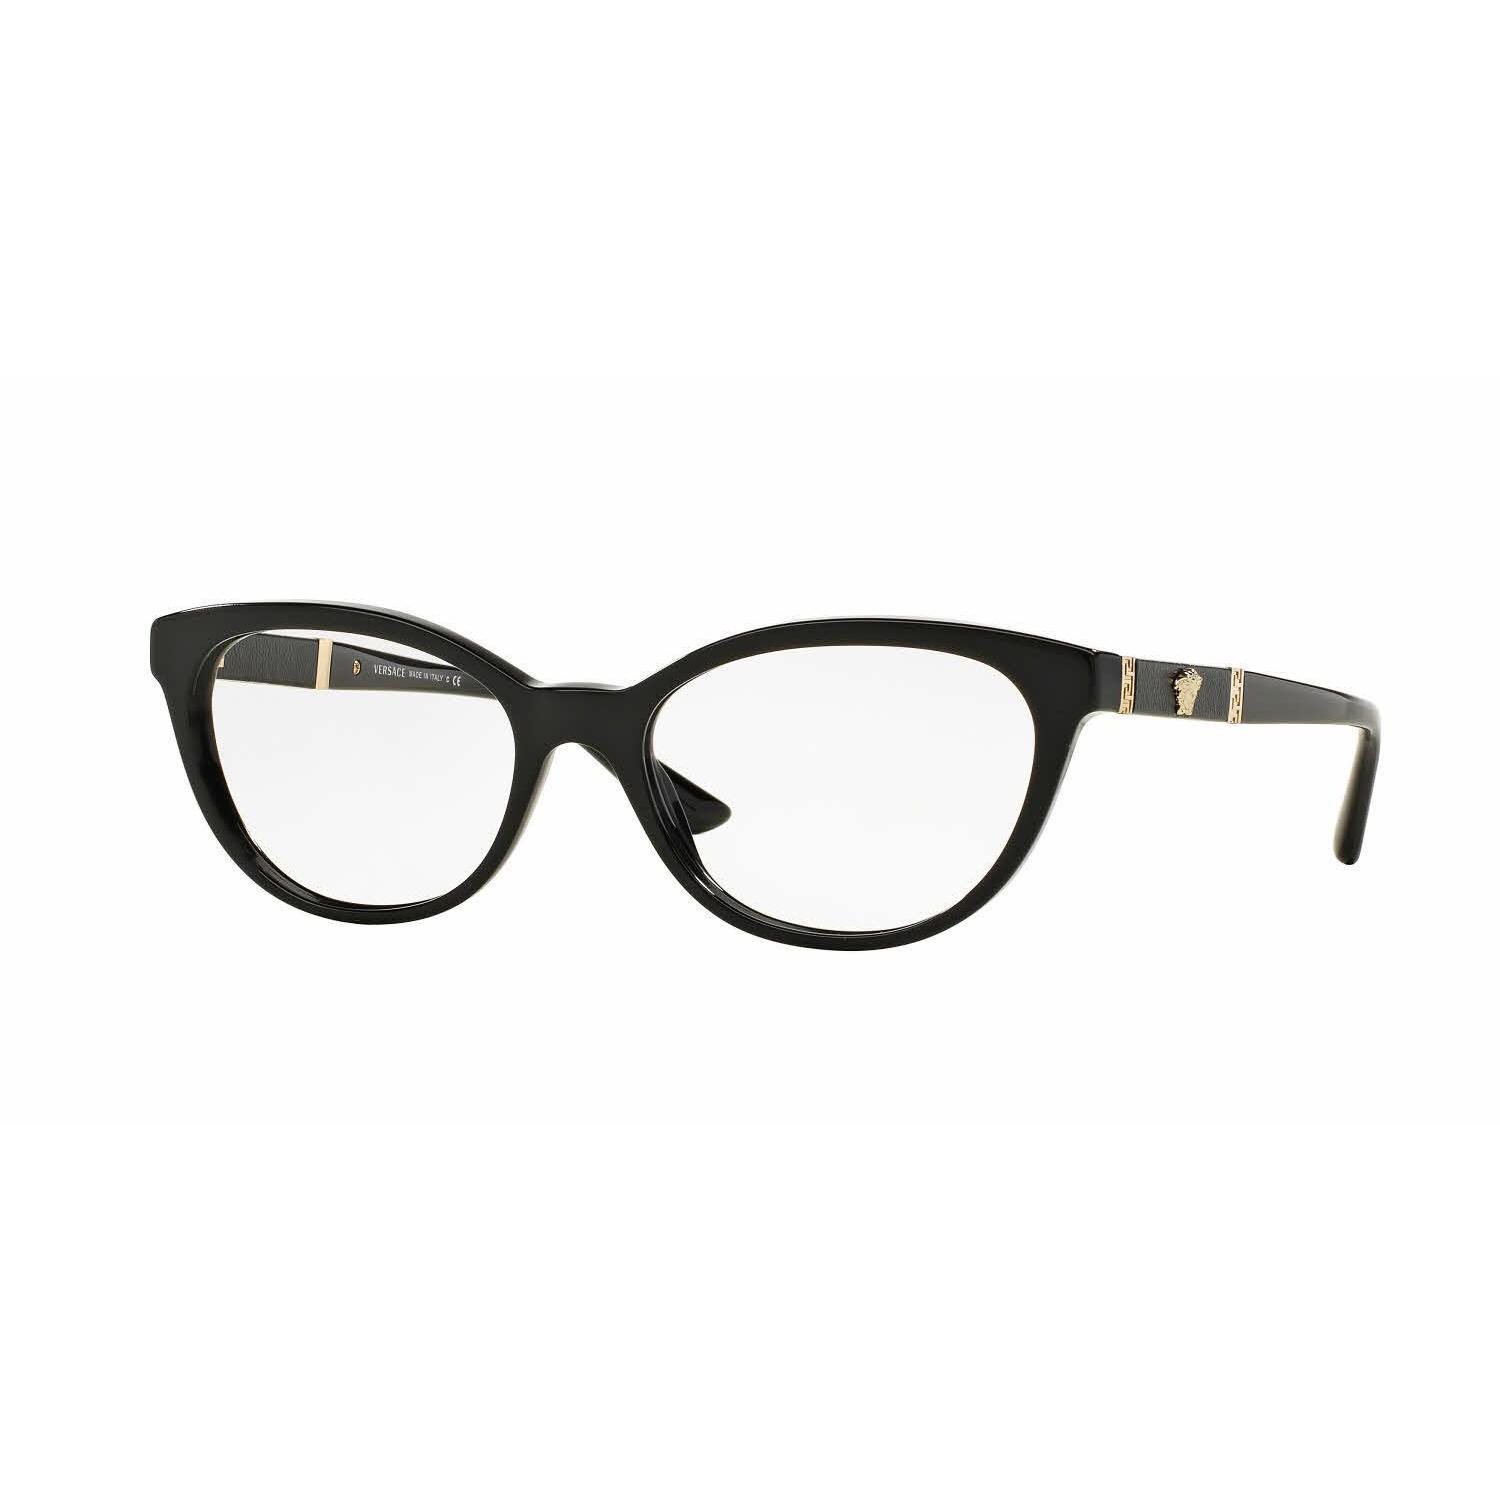 4d503513bac Shop Versace Womens VE3219Q GB1 Black Plastic Oval Eyeglasses - Free  Shipping Today - Overstock - 13805596